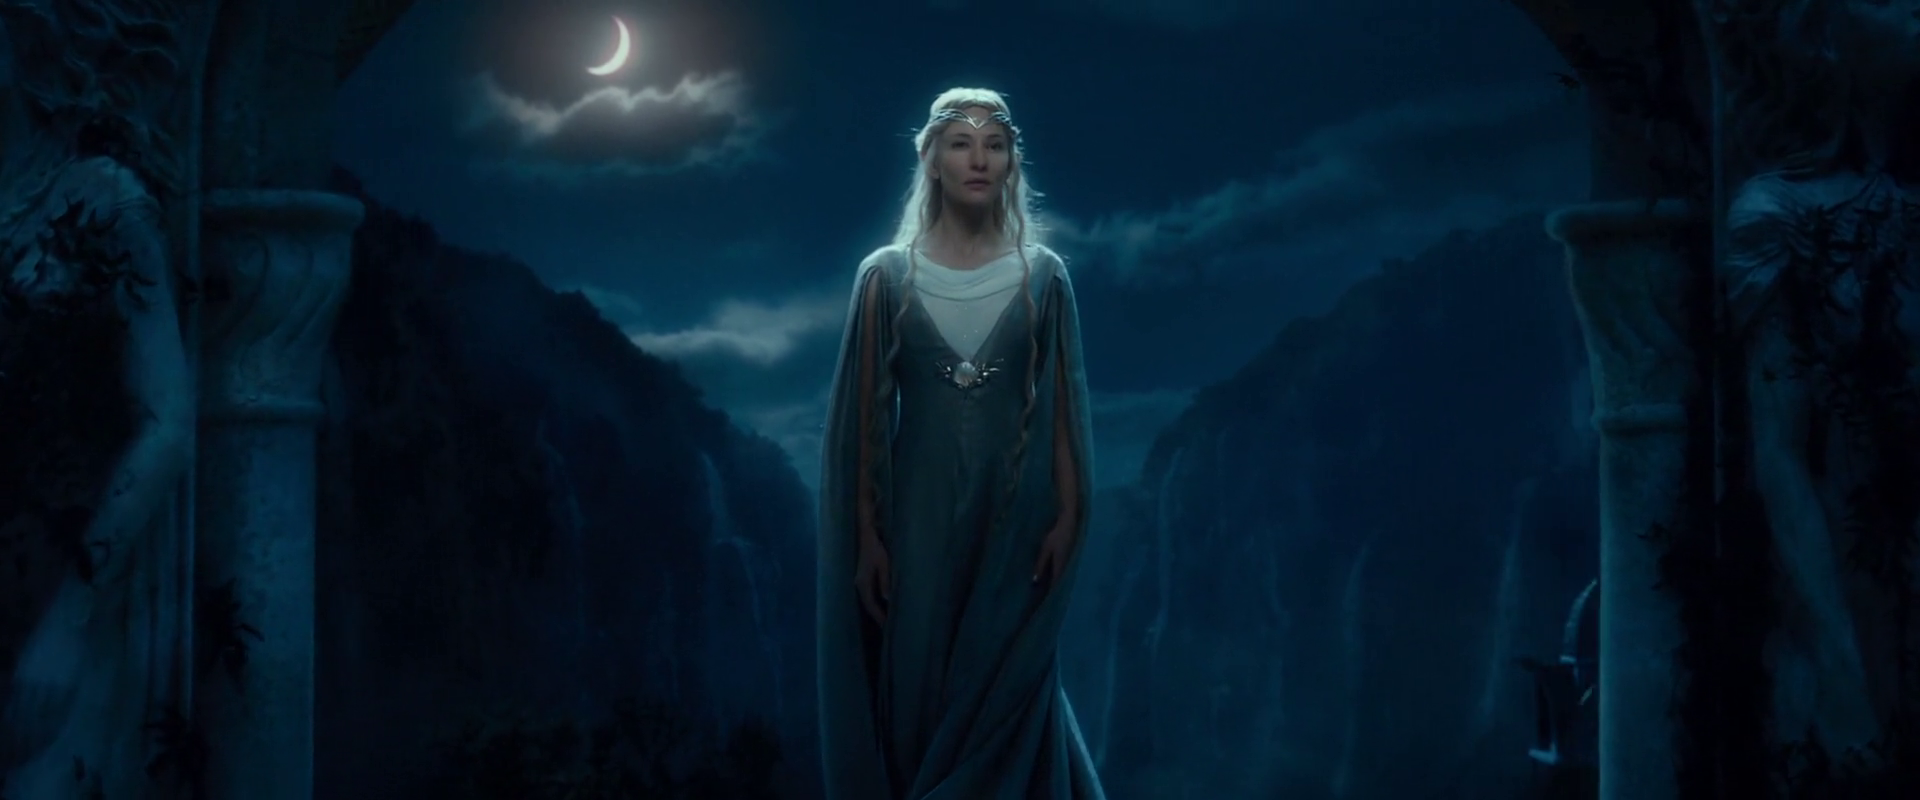 Galadriel images The Hobbit   Galadriel HD wallpaper and 1920x800